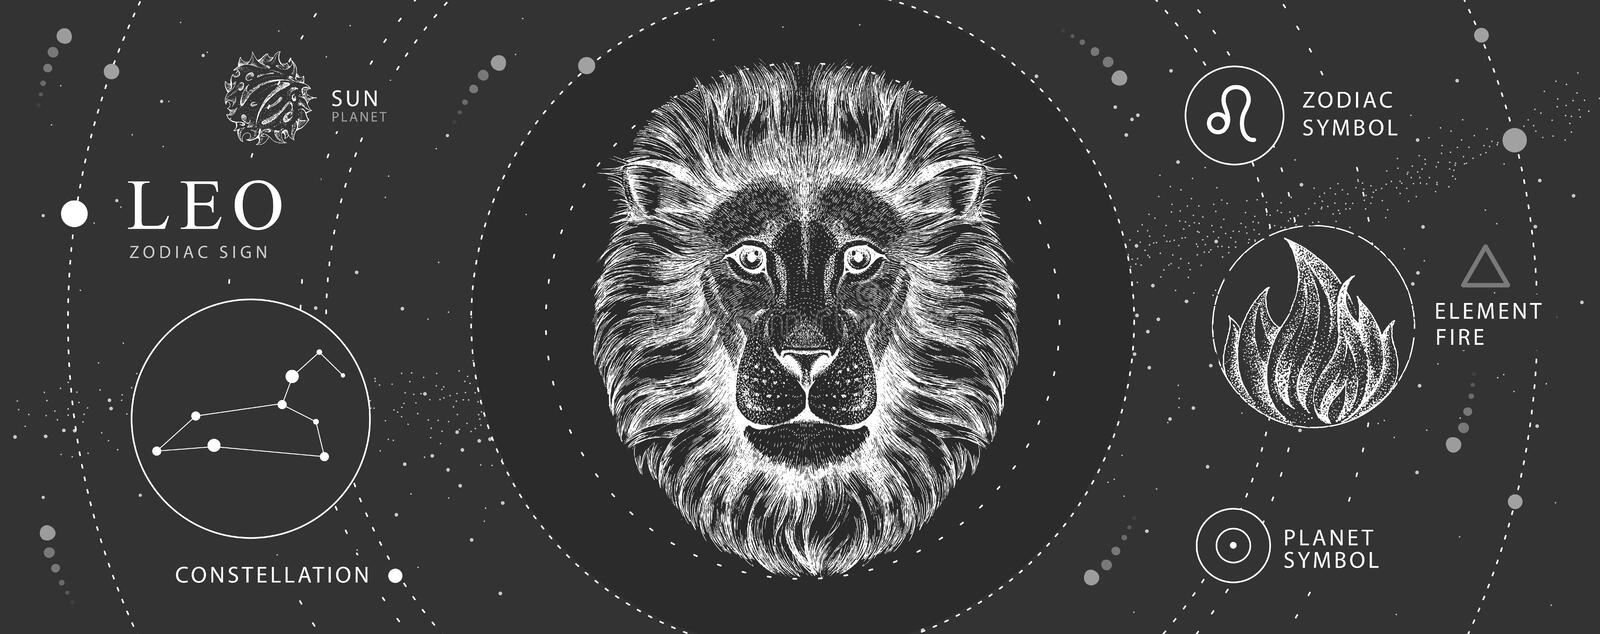 Lion Head Drawing Stock Illustrations 6 032 Lion Head Drawing Stock Illustrations Vectors Clipart Dreamstime Can find photos and the realistic lion face tattoo on arm. dreamstime com